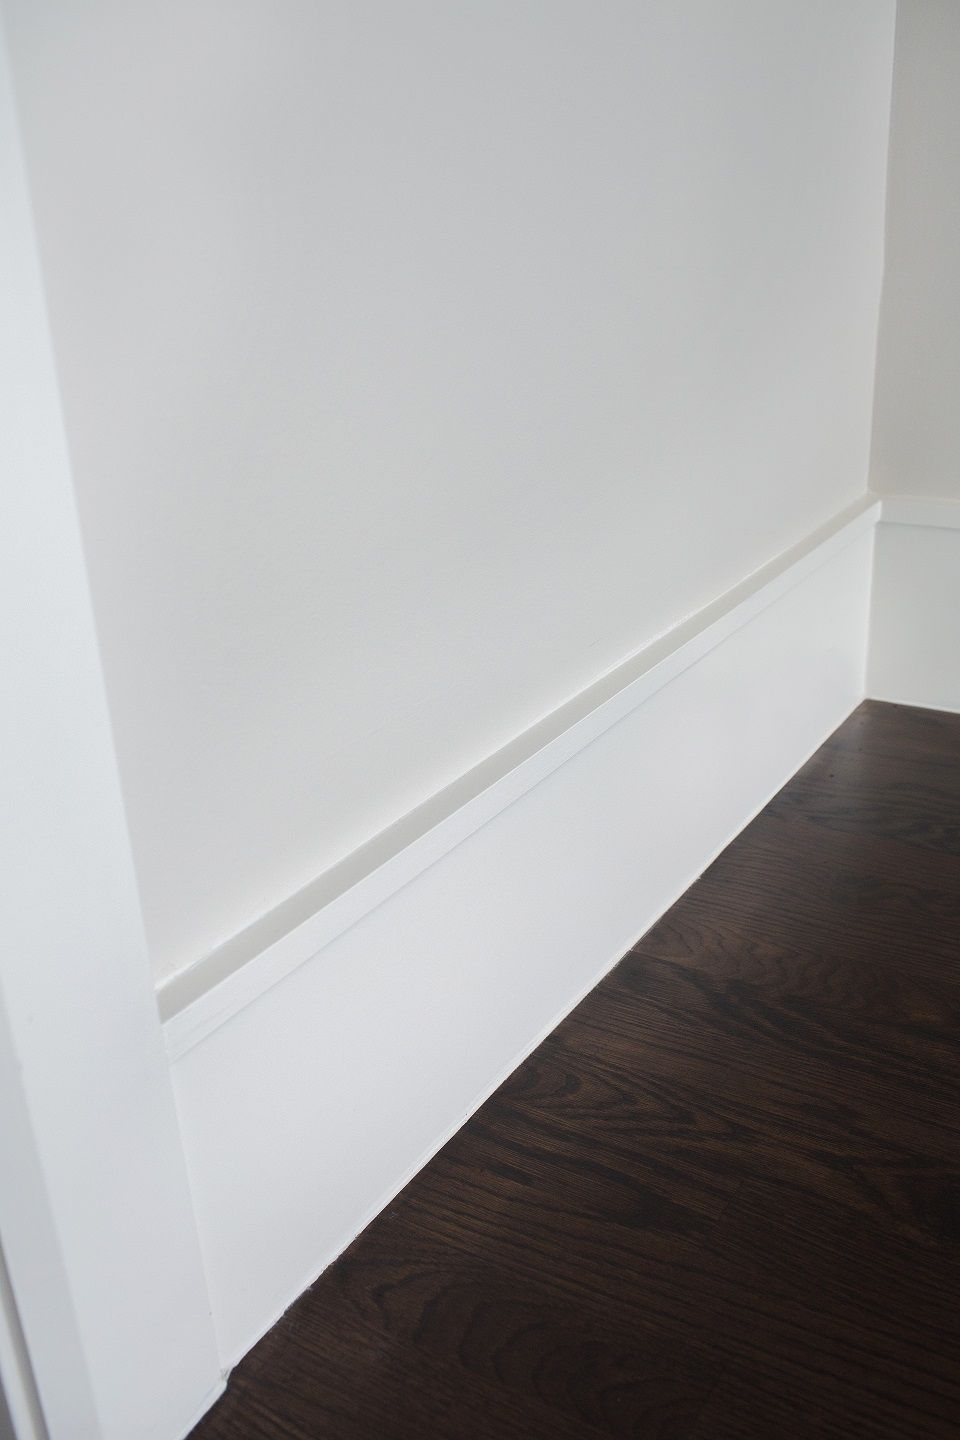 Pin By Samoreals On Completed 6239 Rex Baseboard Styles Baseboard Trim Moldings And Trim